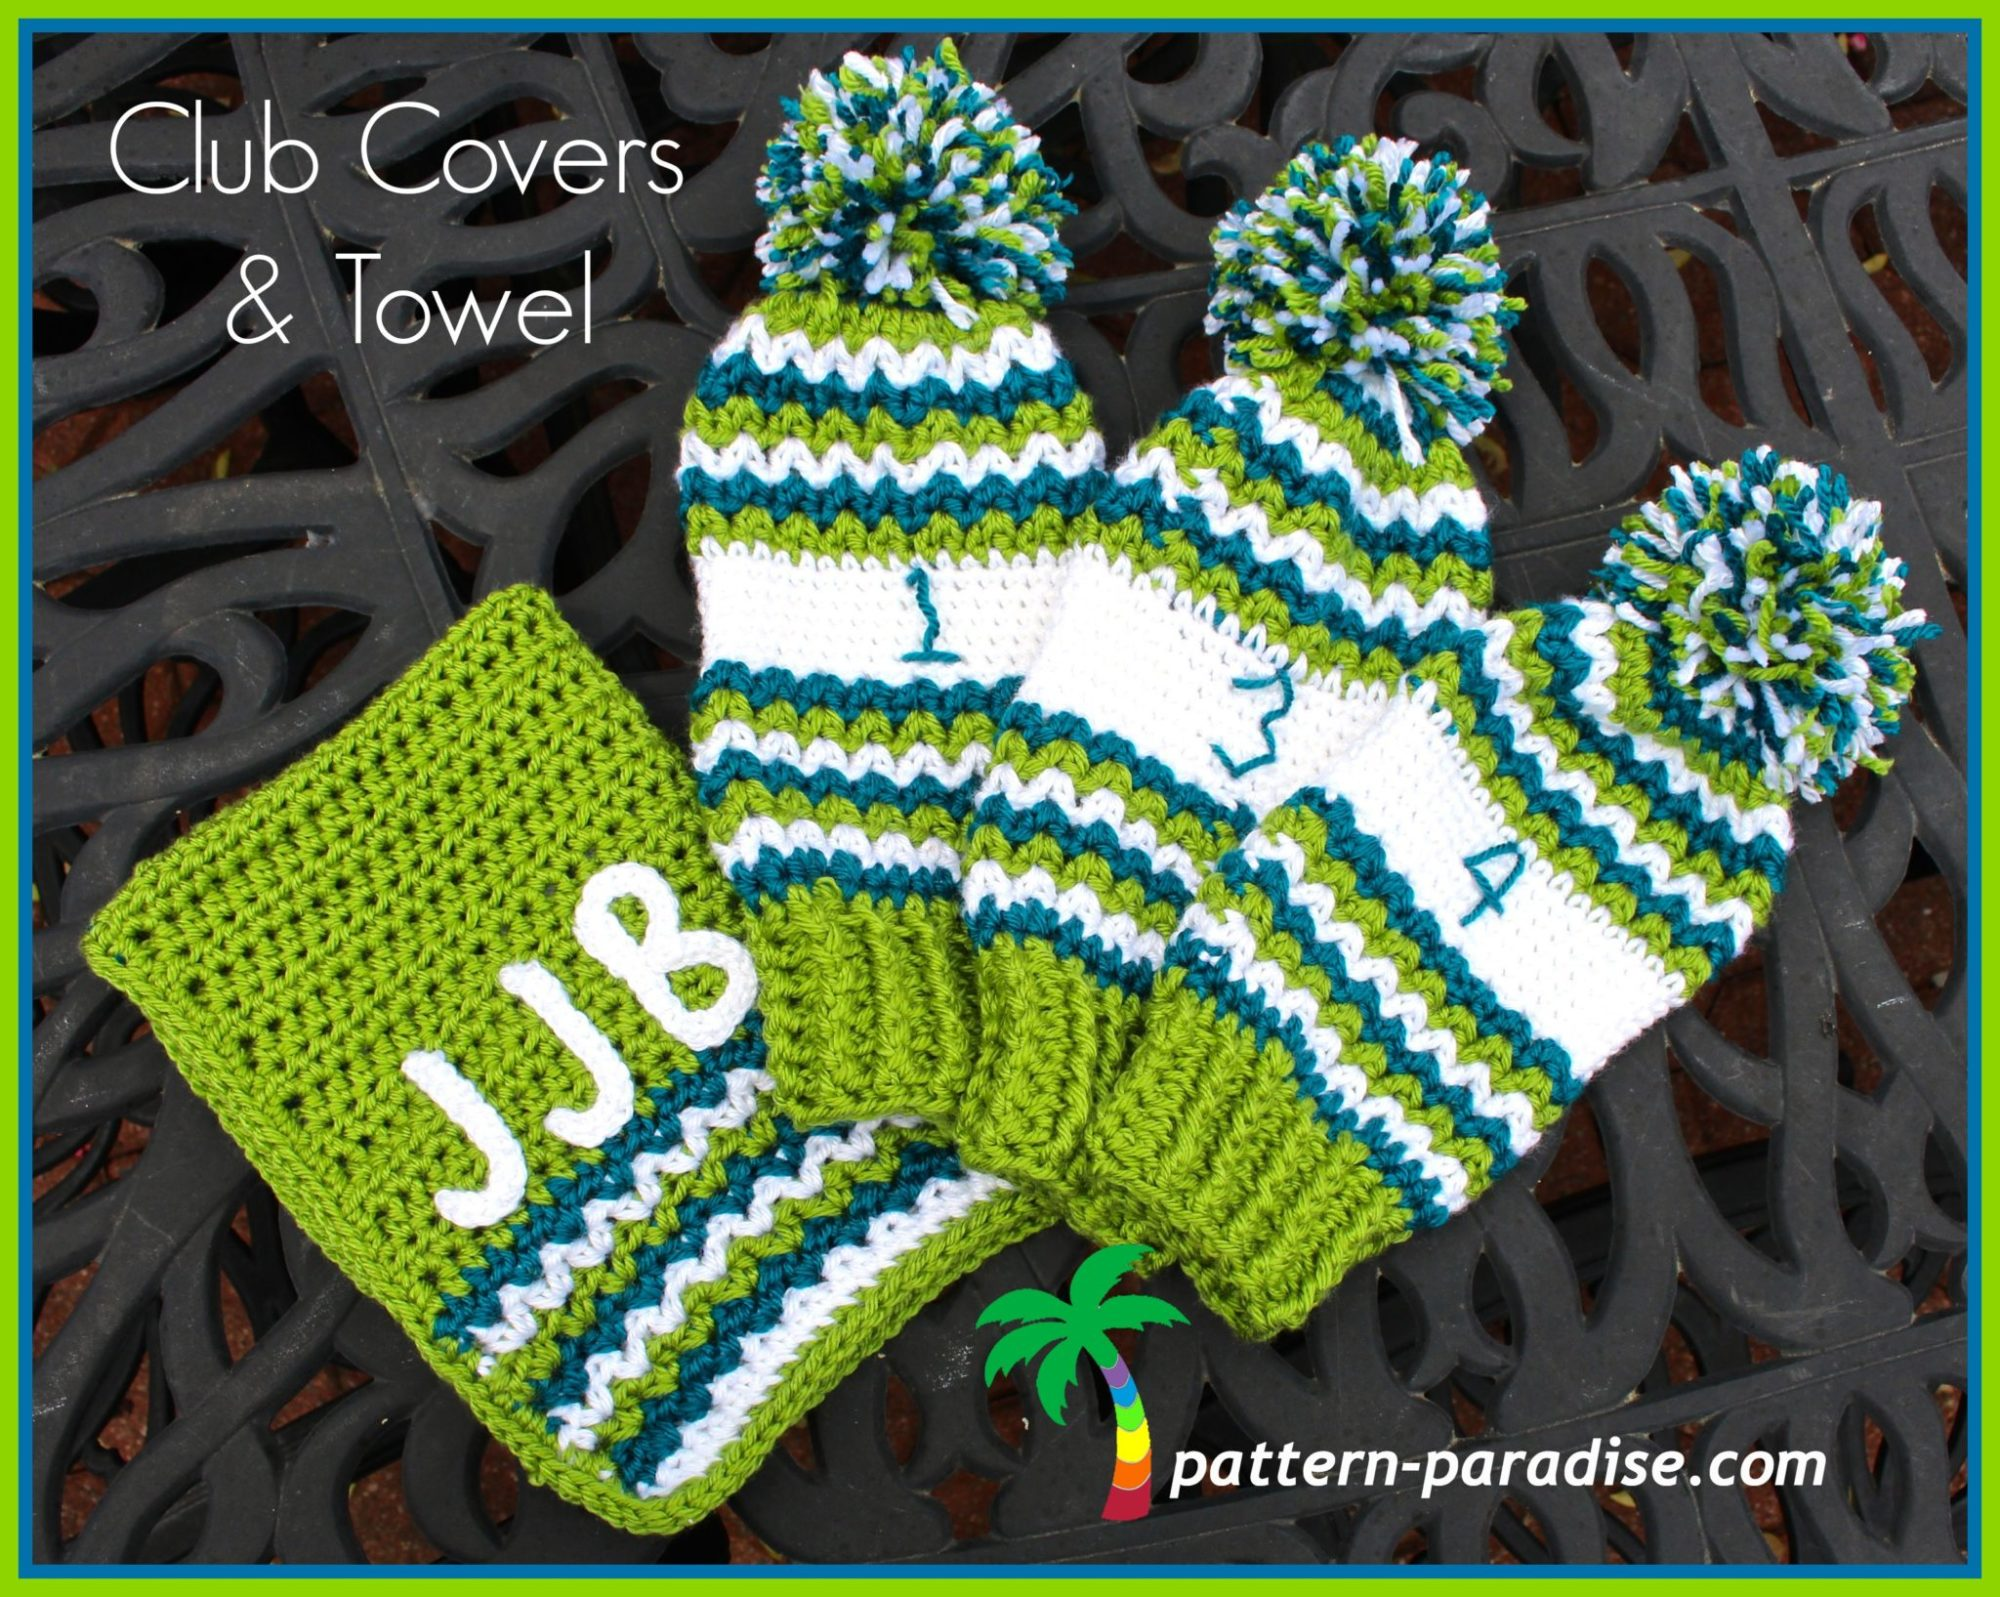 Free crochet pattern golf club covers and towel pattern paradise club covers and towel img1000g bankloansurffo Gallery